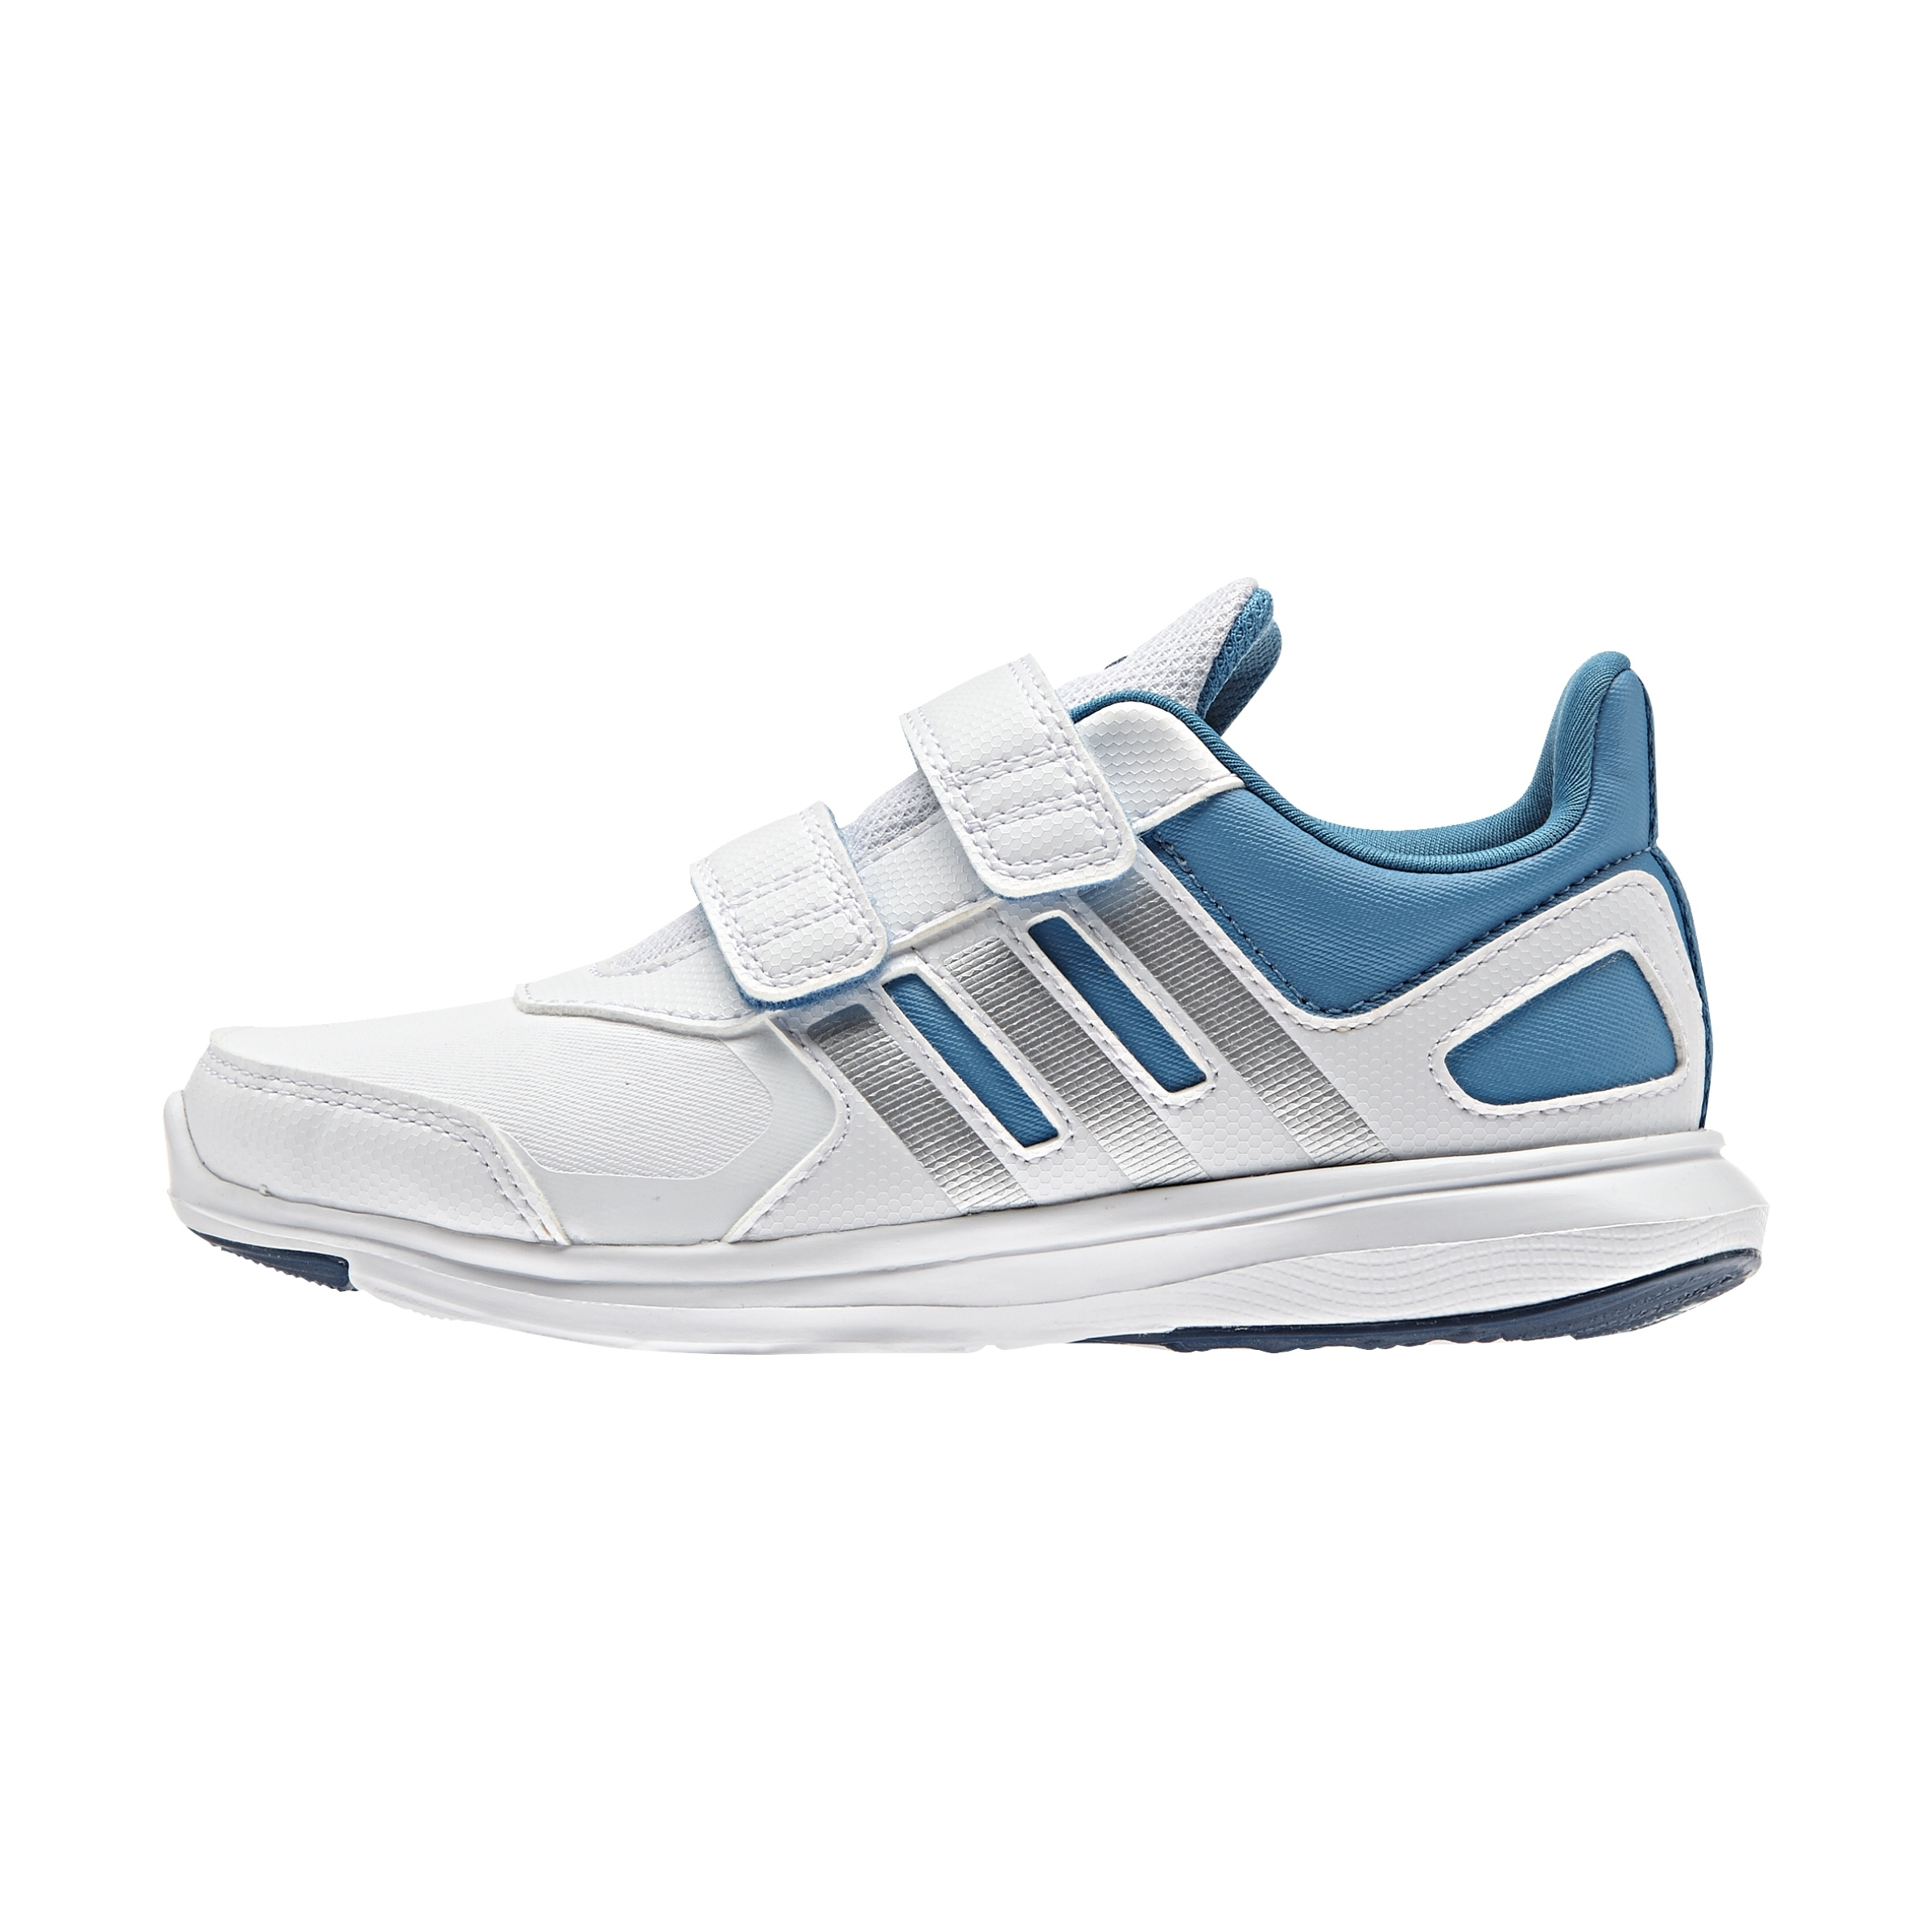 reputable site c91d7 d6a98 Adidas Hyperfast 2.0 CF K (white turquoise)